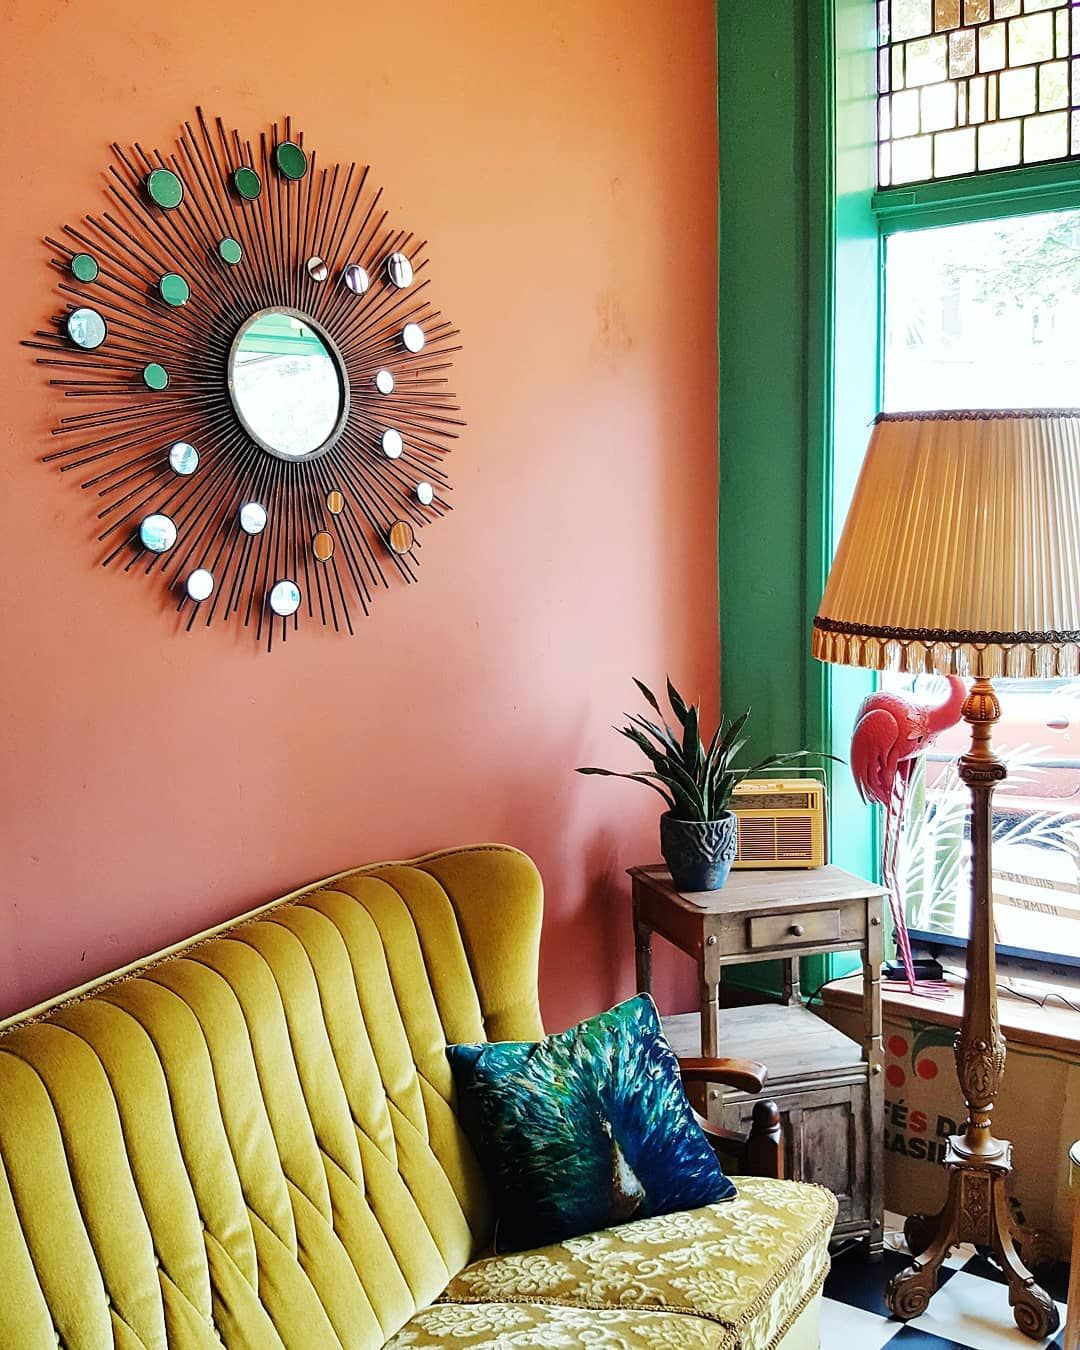 Pin On Home Is Where The Heart Is #peach #living #room #walls